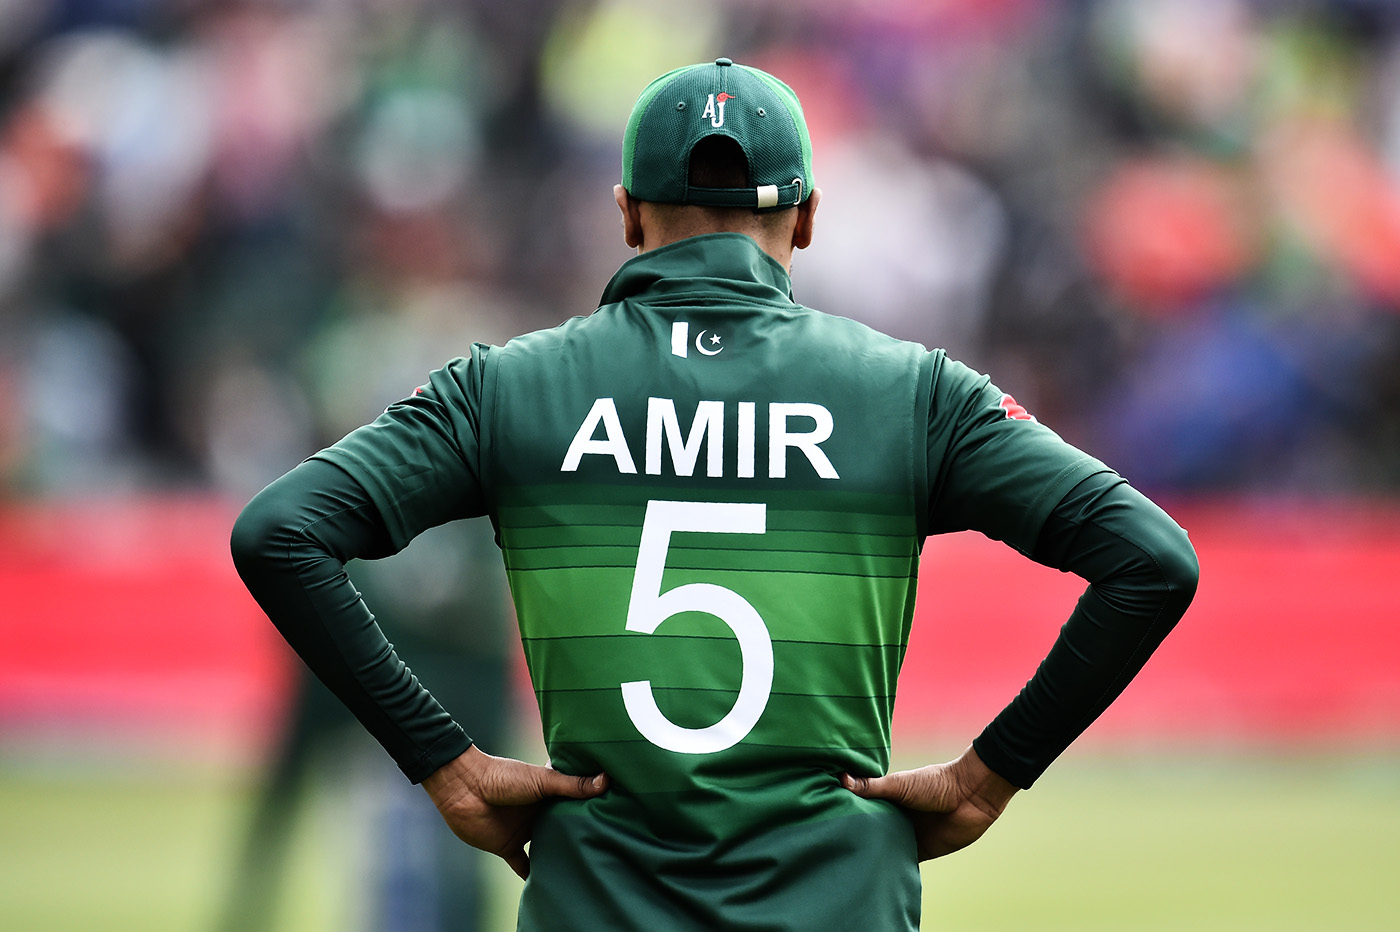 Amir often tells the story of how he felt when he first saw his name on a Pakistan shirt